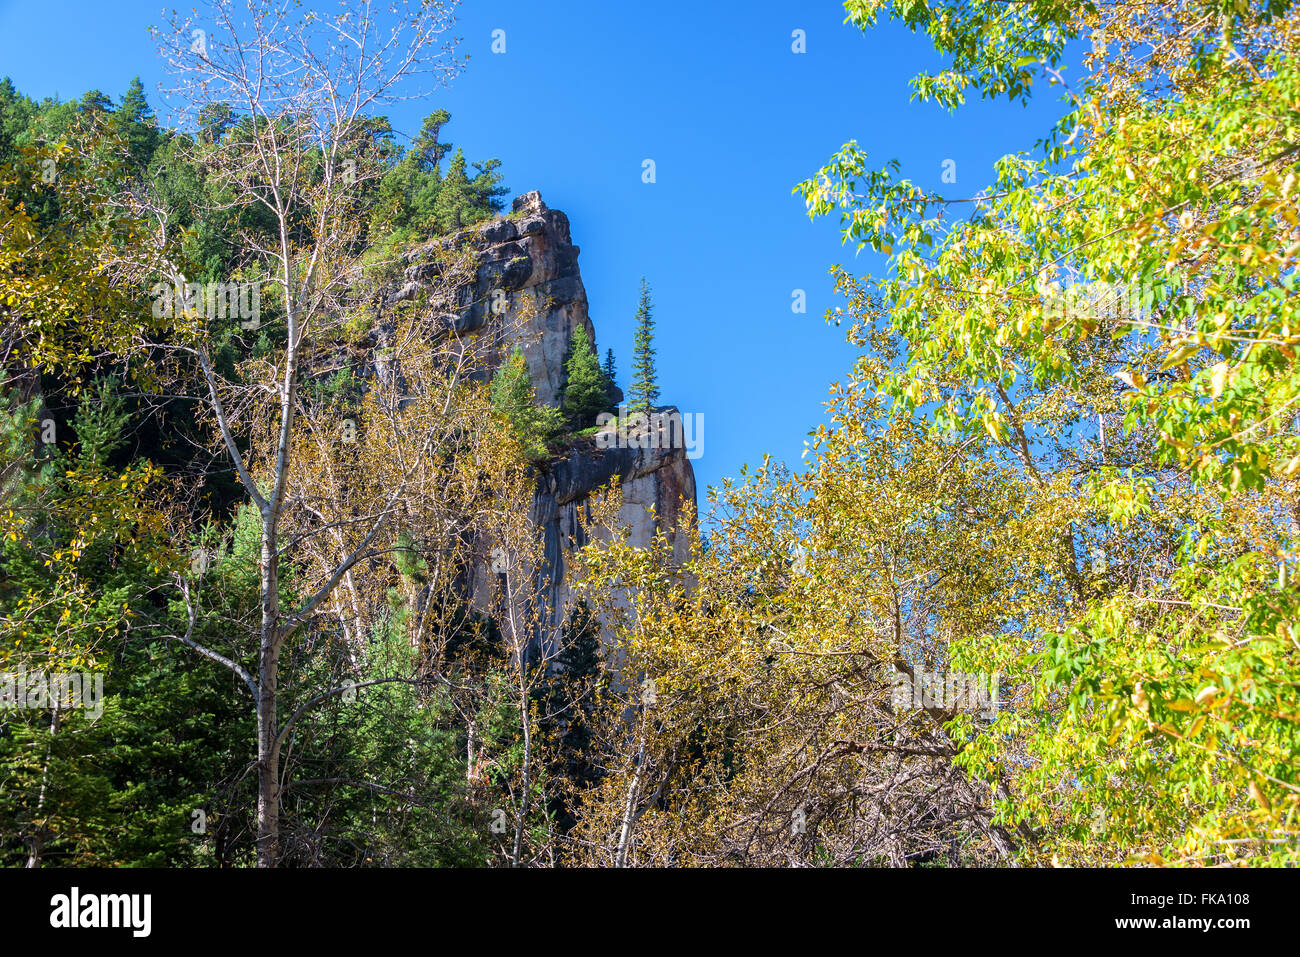 View of South Piney Canyon in Story, Wyoming - Stock Image